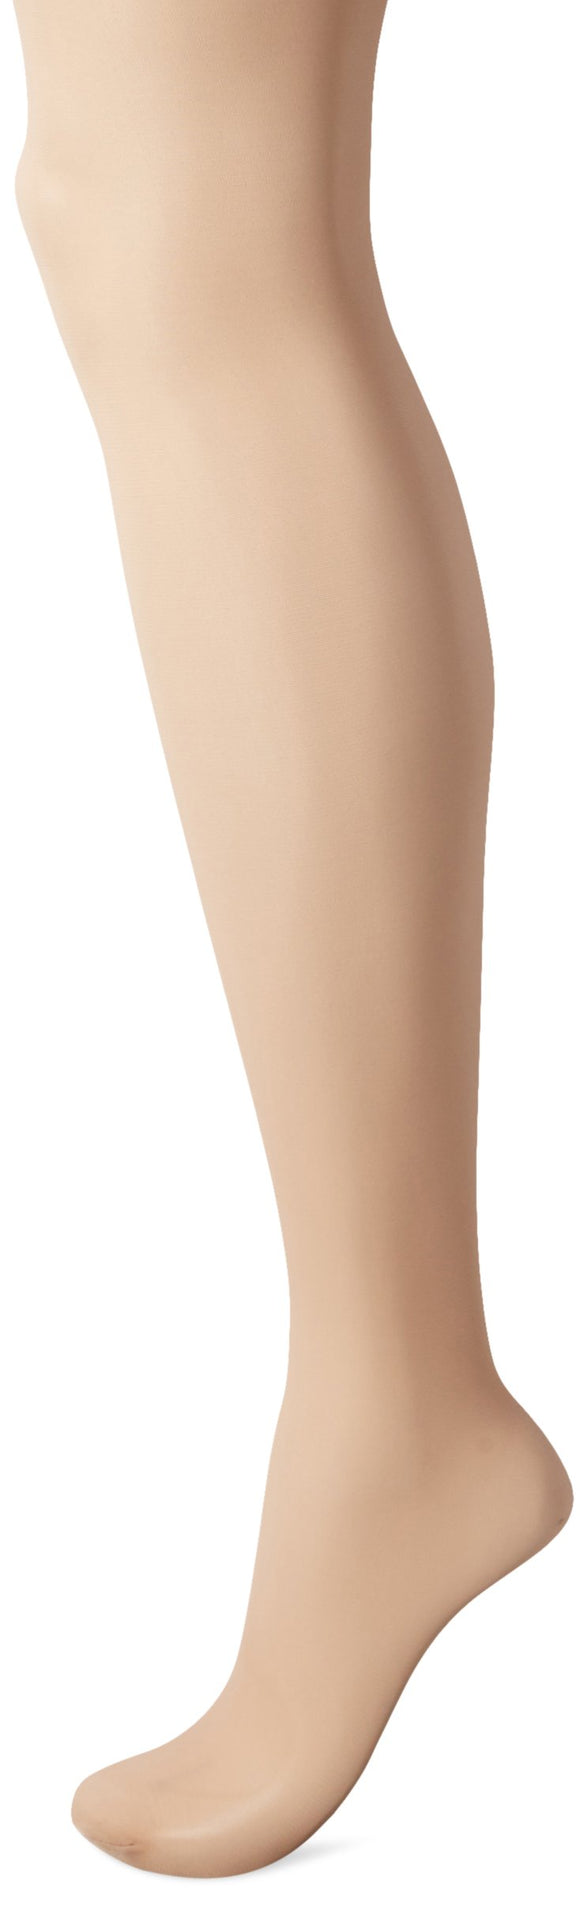 Leggs Sheer Energy St Nude B Pack of 3